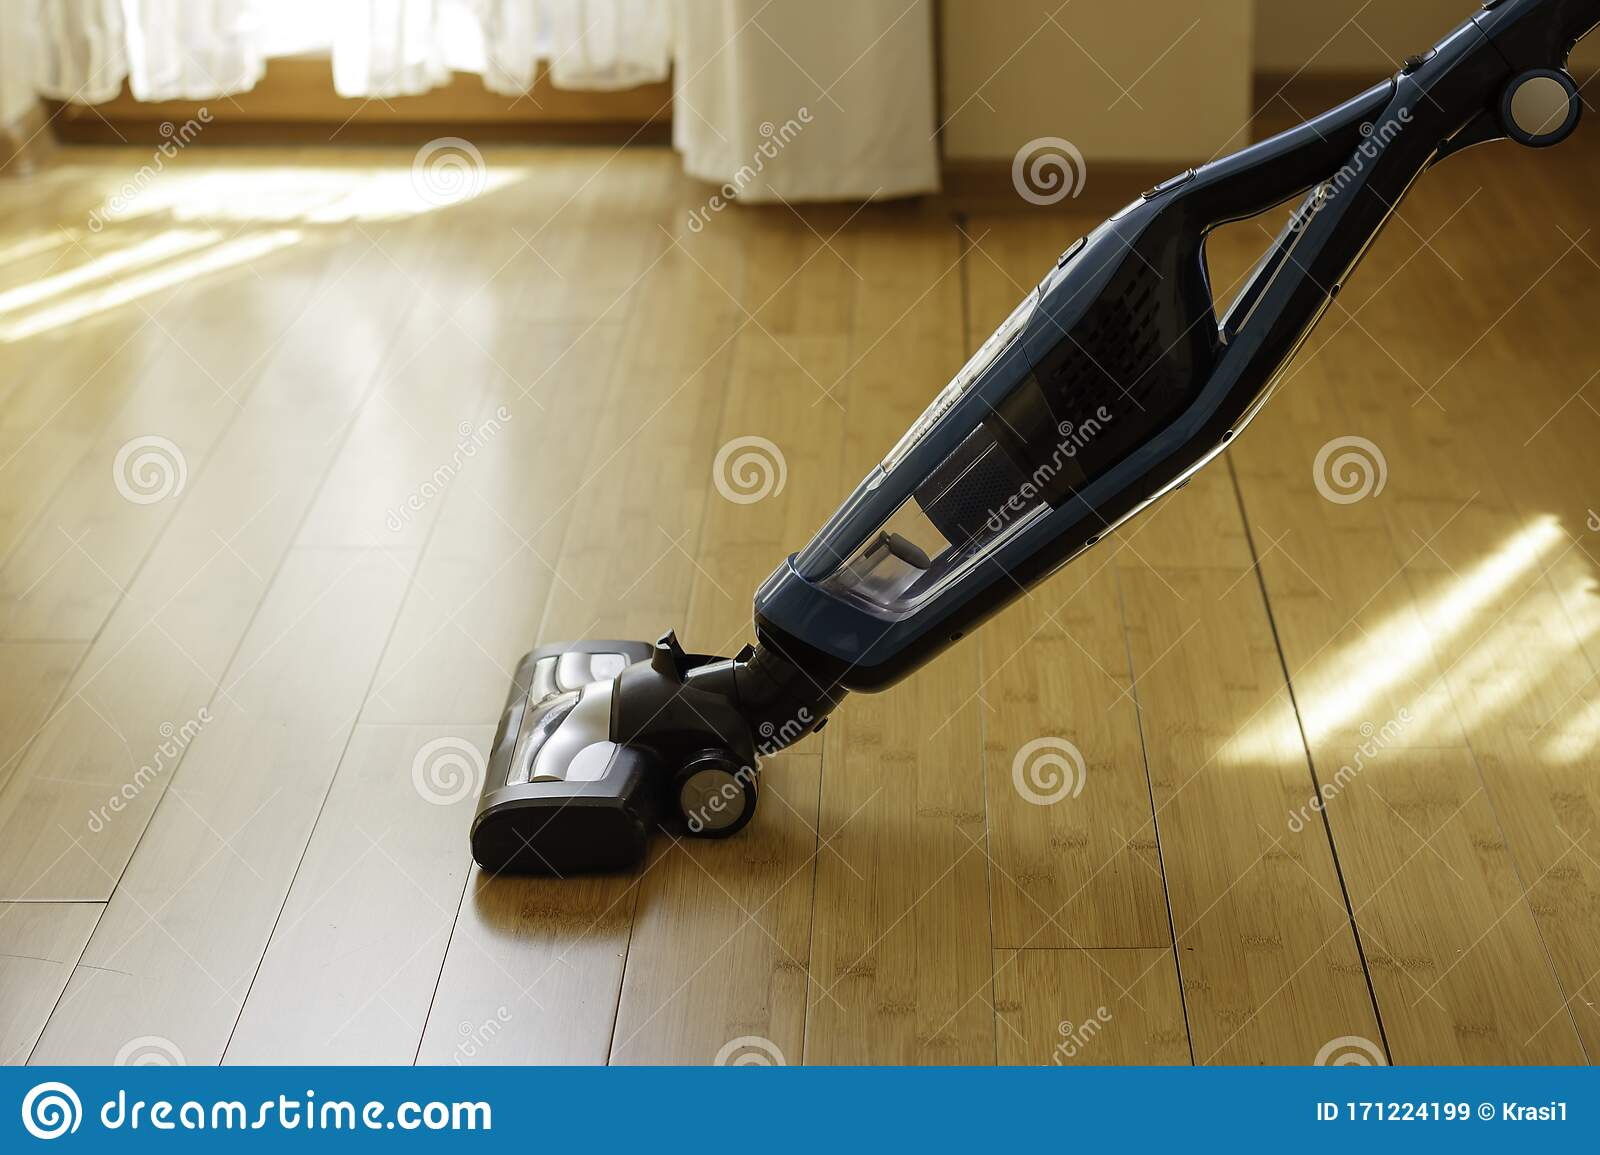 Vacuum Cleaner Cleaning Bamboo Flooring In A Room Stock Image